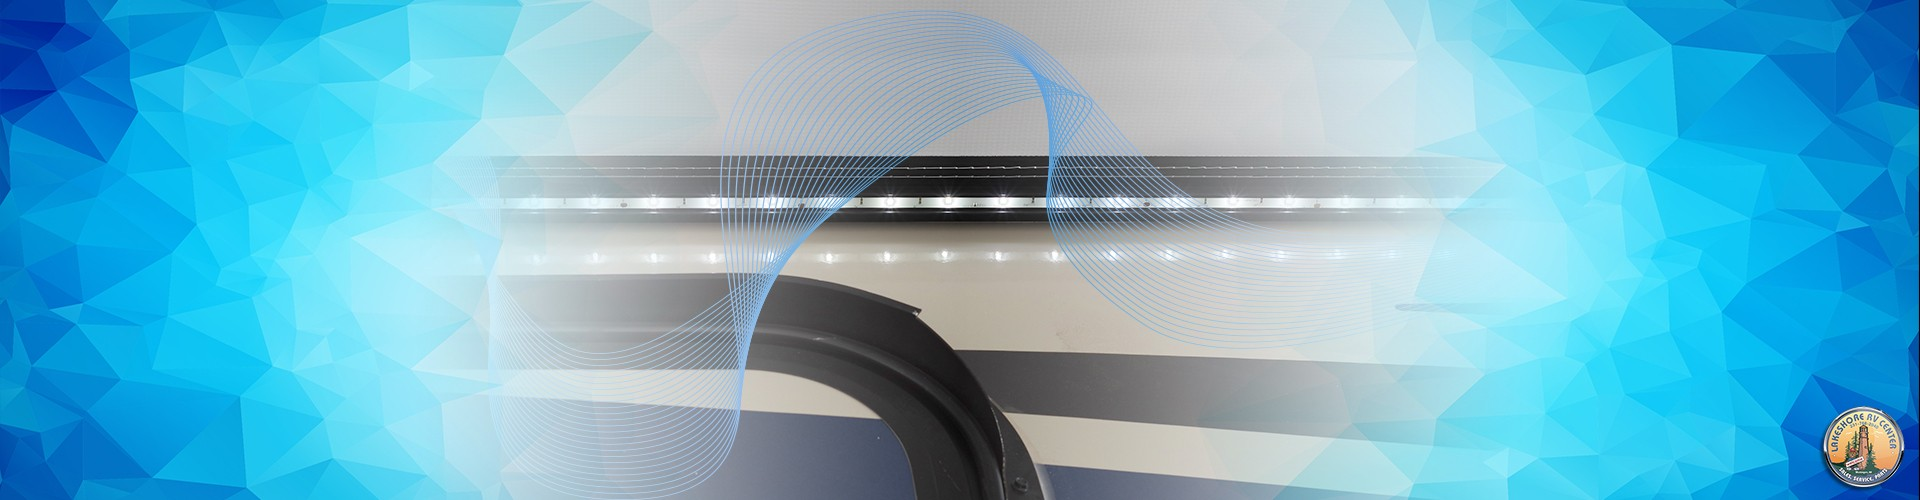 How to Install Awning Lights  Lakeshore RV Blog